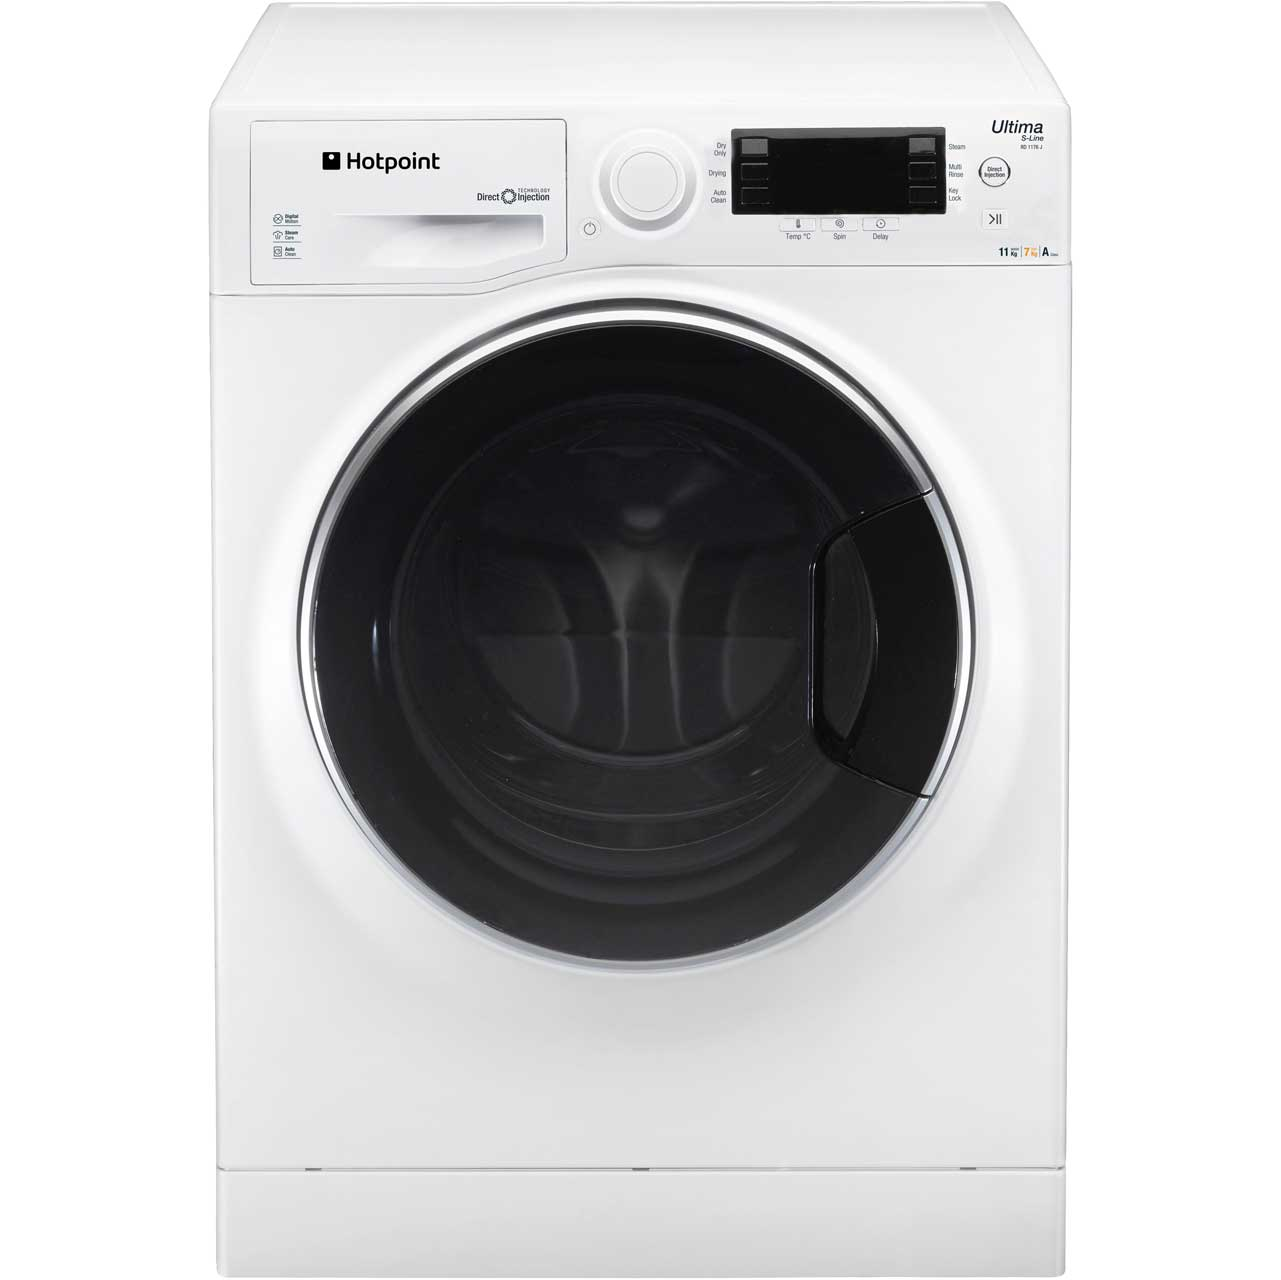 Hotpoint Ultima SLine RD1176JD Free Standing Washer Dryer in White